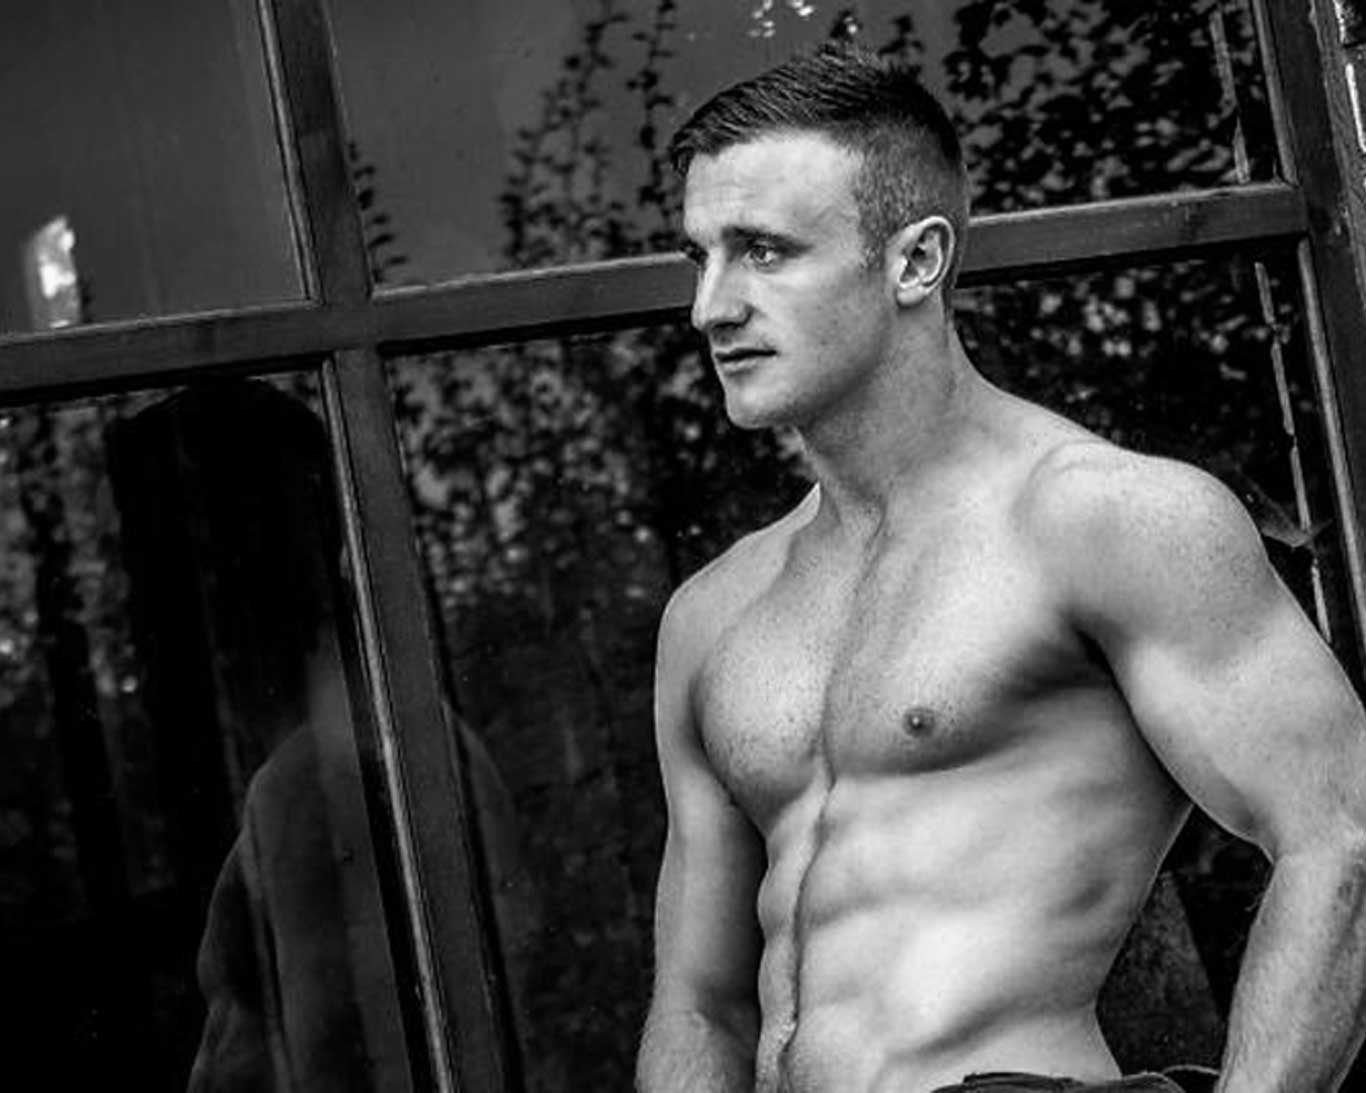 Military 1st Fitness Instructor, Dean Hammond